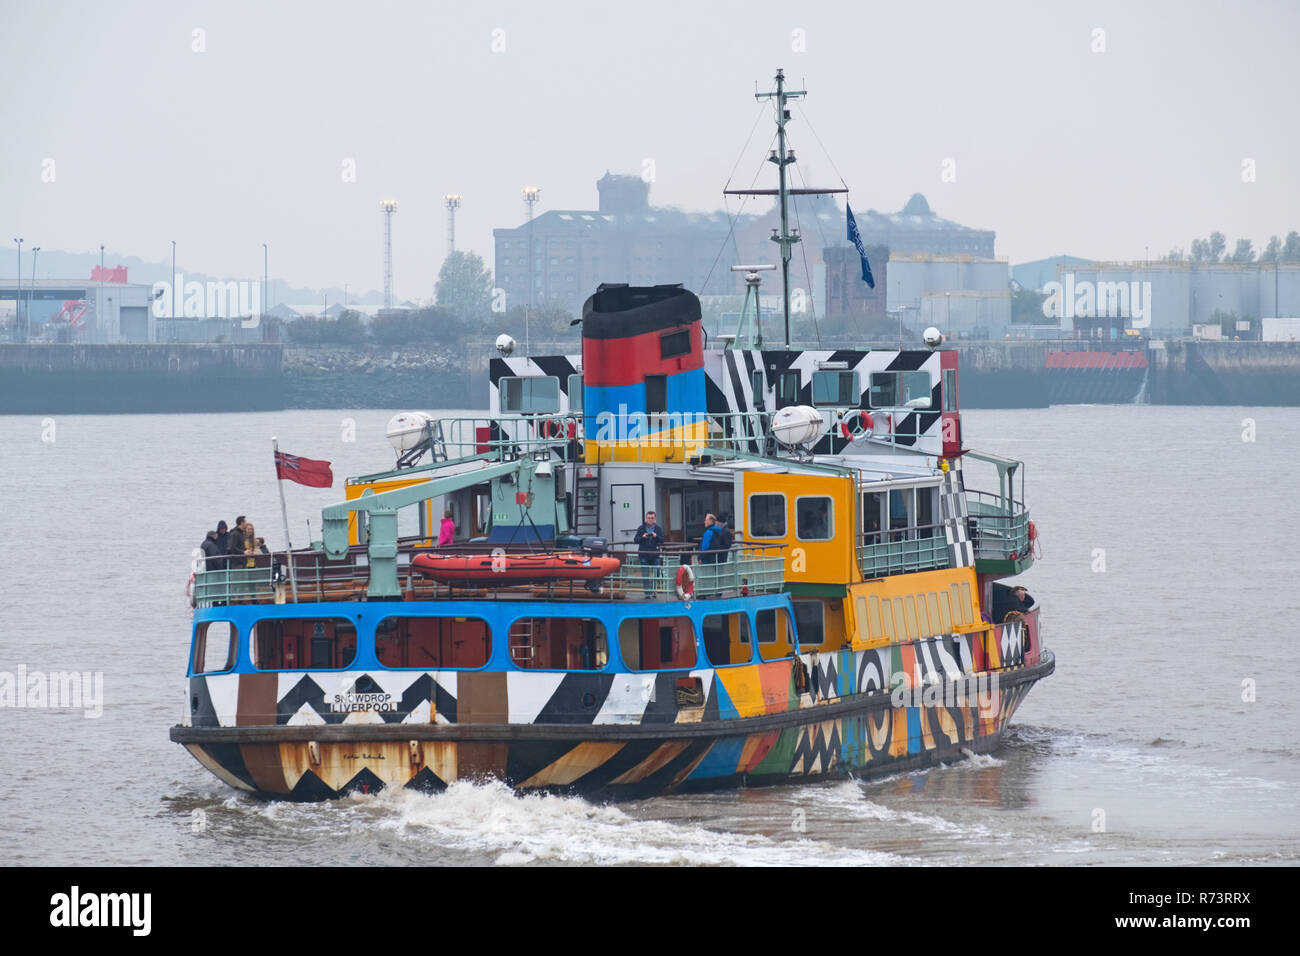 Liverpool, England - November 5, 2018:  A passenger ferry crossing the river Mersey from Liverpool to the Wirral peninsula - Stock Image